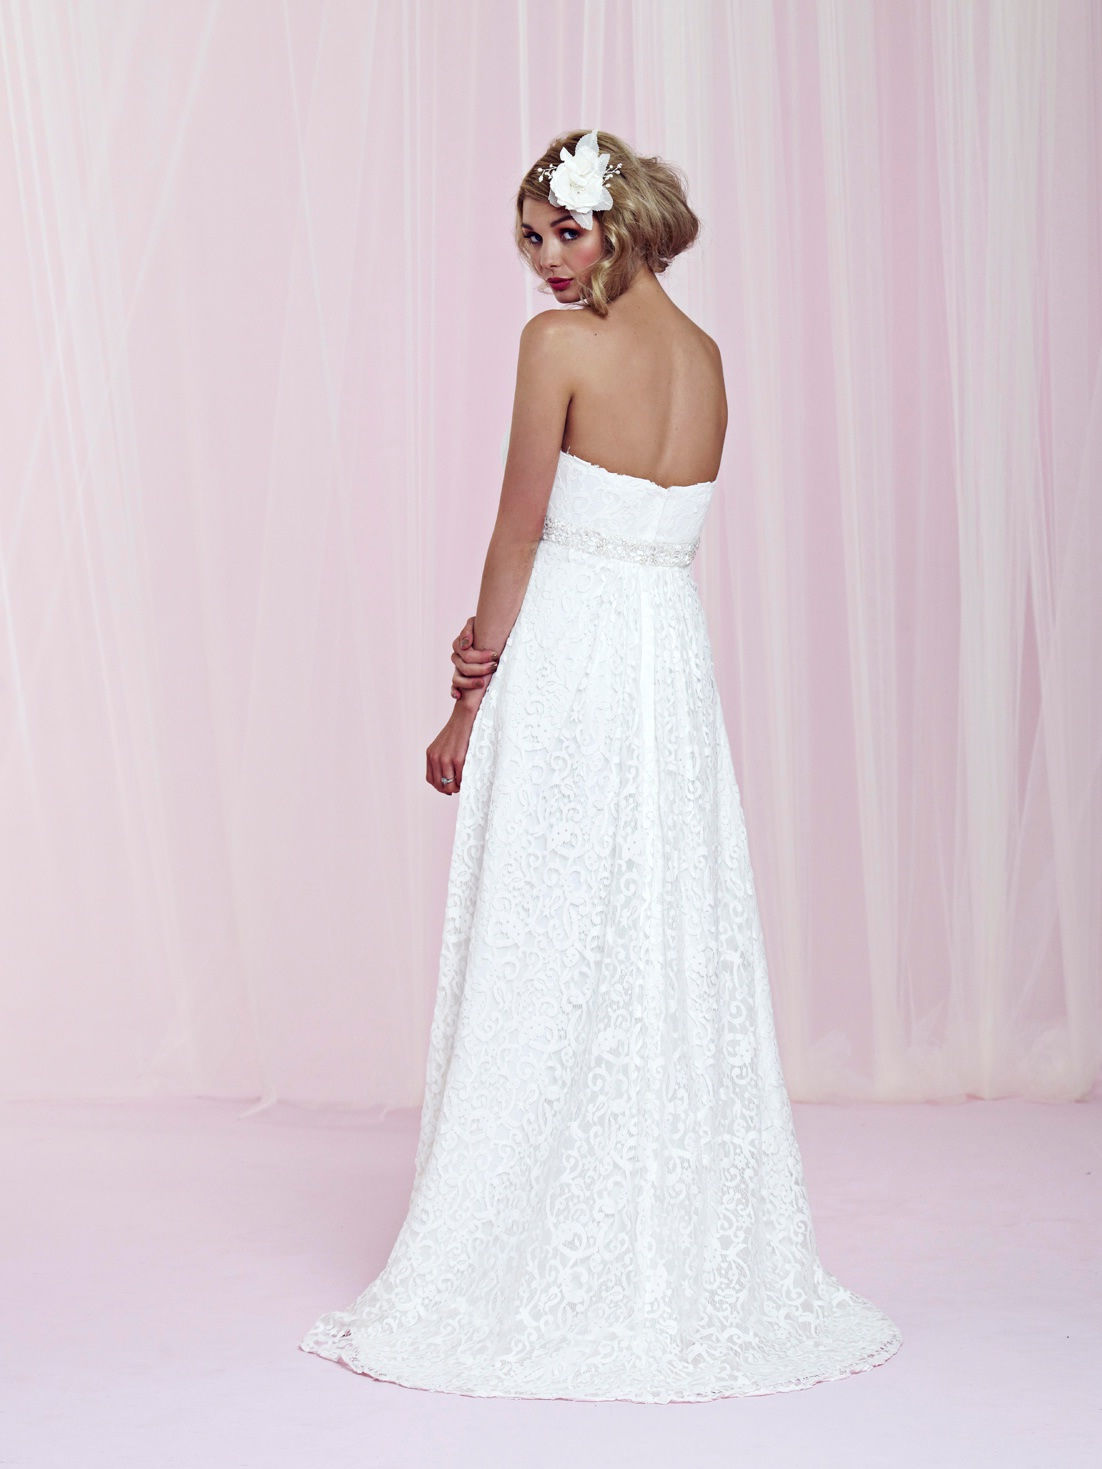 Bridesmaid Dresses Archives - Page 363 of 479 - List Of Wedding ...